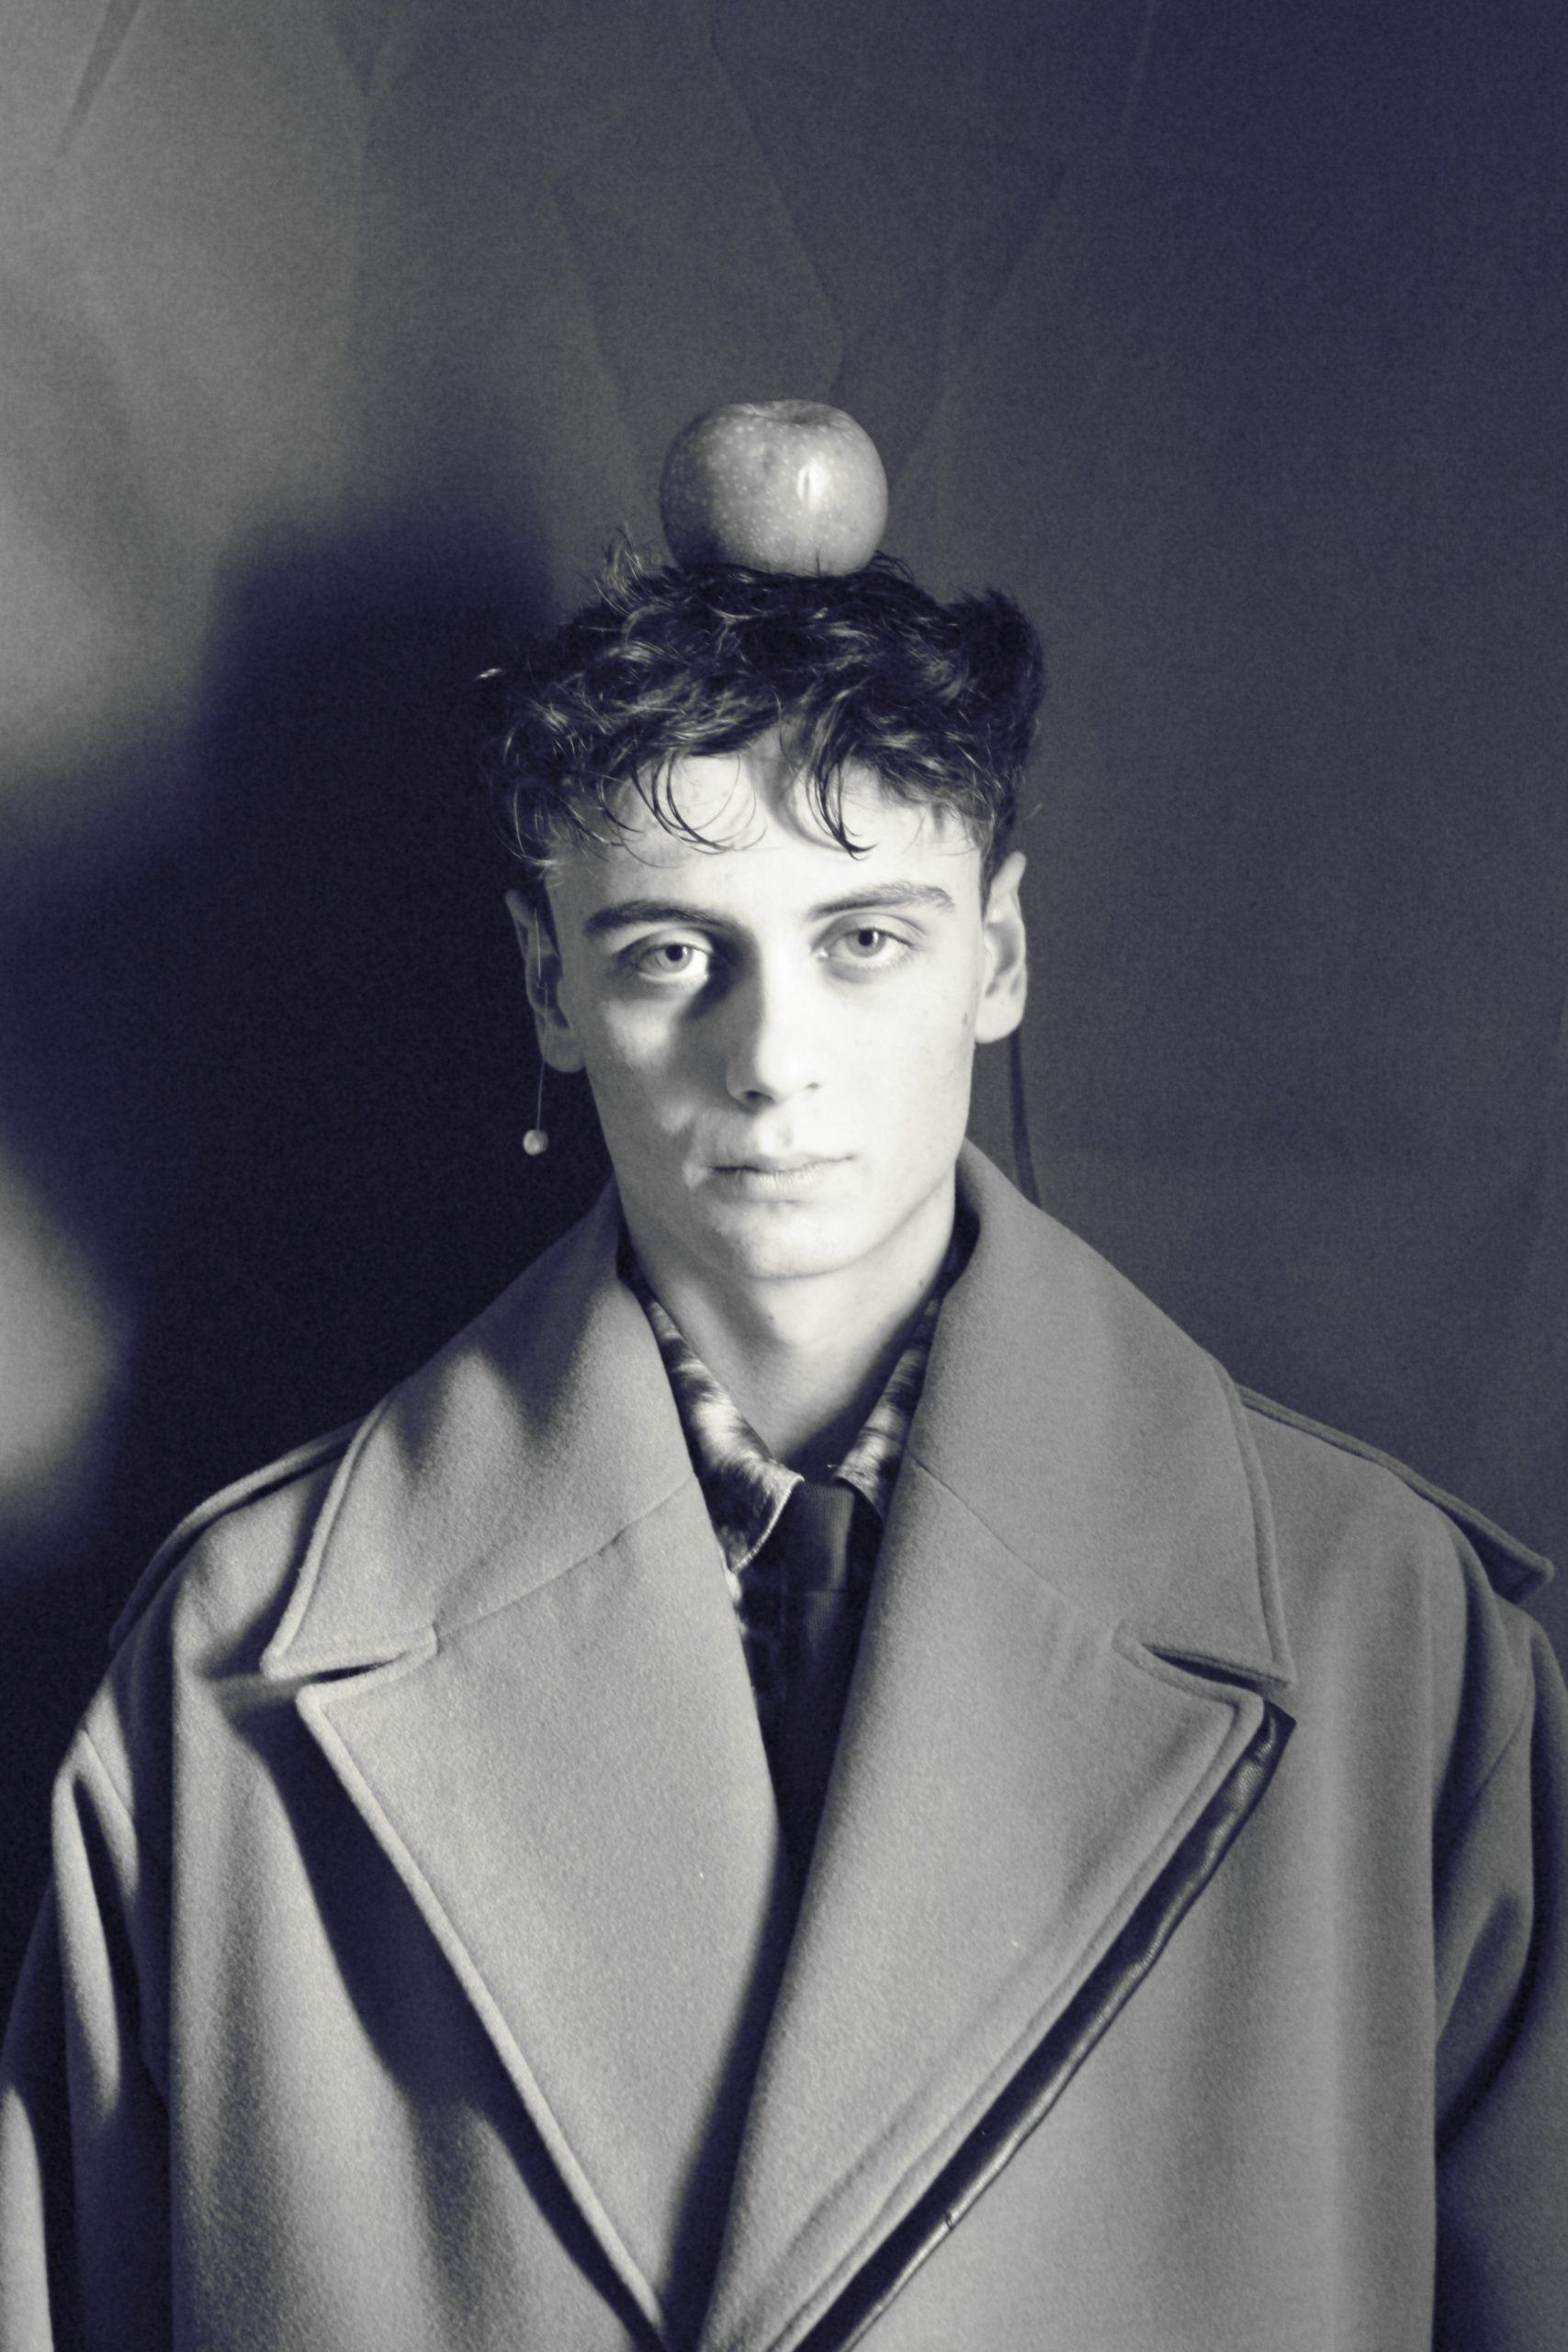 Marc Soler with Afrodite earring with apple on head